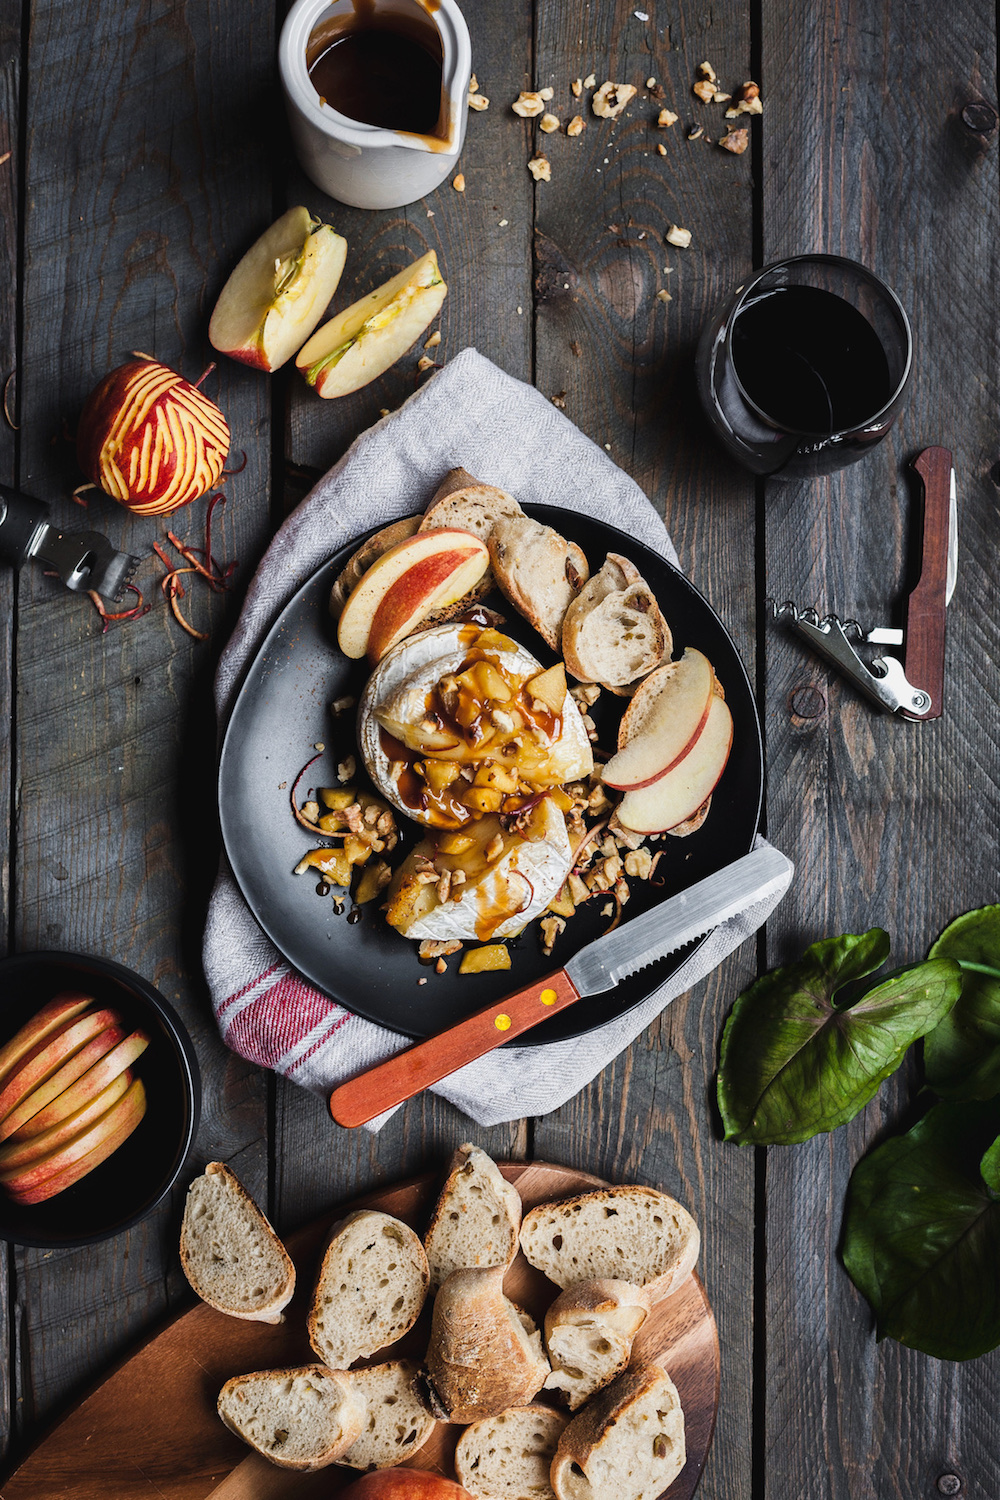 Baked Brie With Caramelized Apples